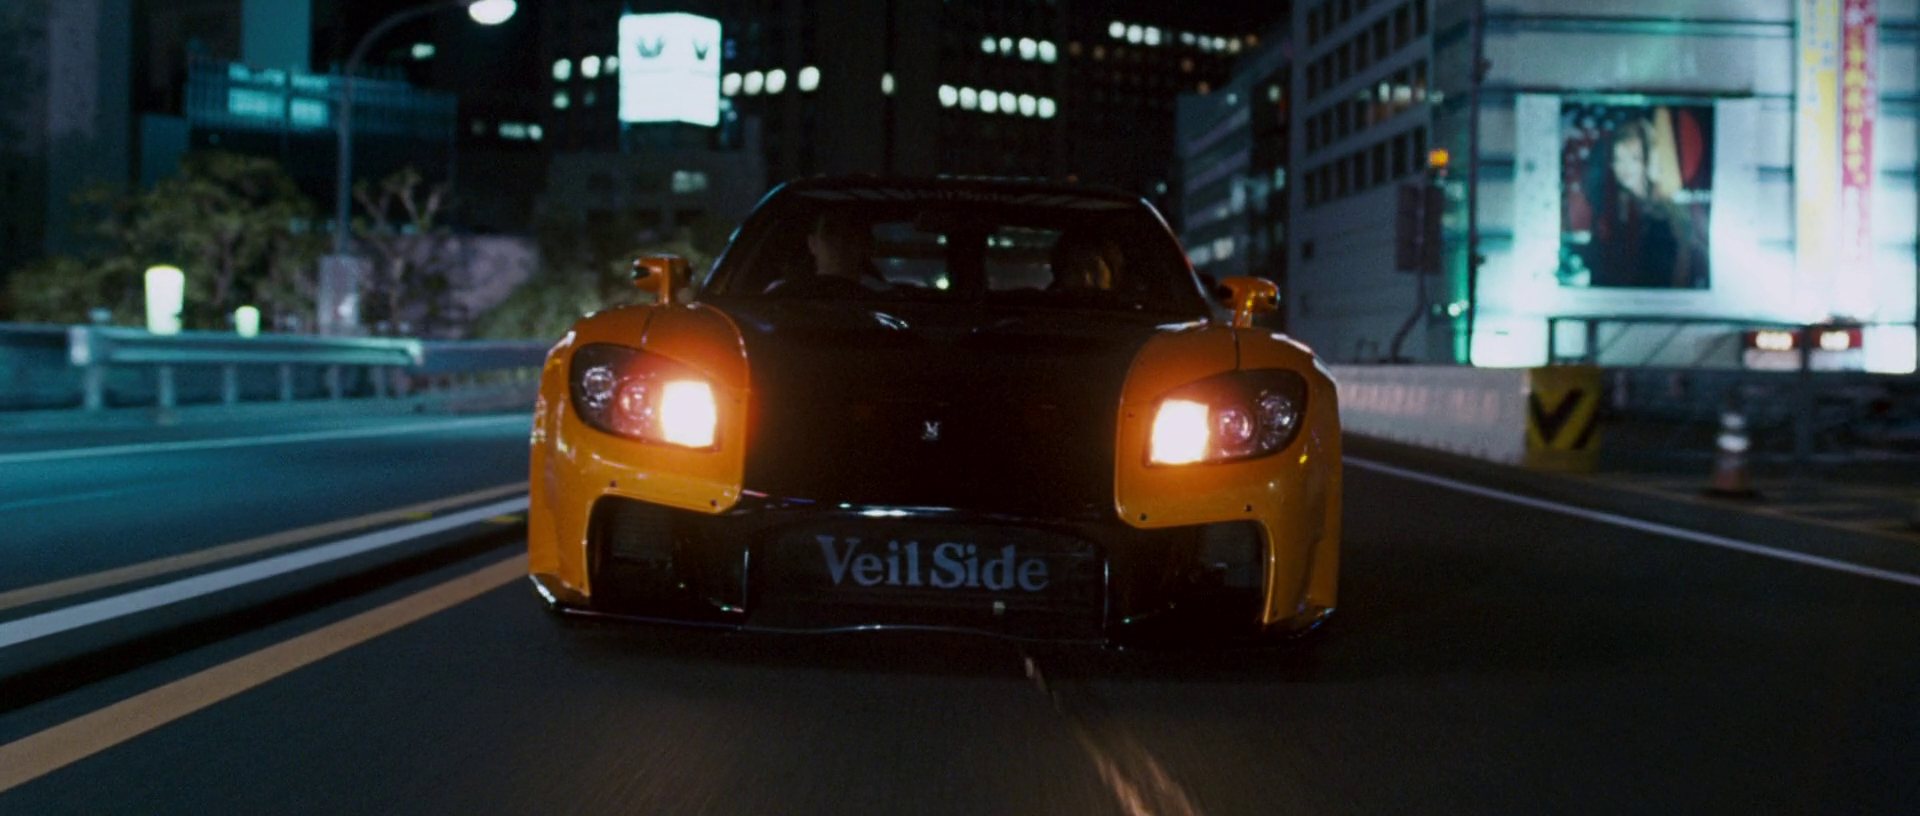 mazda rx7 fast and furious 6. veilside fortune rx7 front viewpng mazda rx7 fast and furious 6